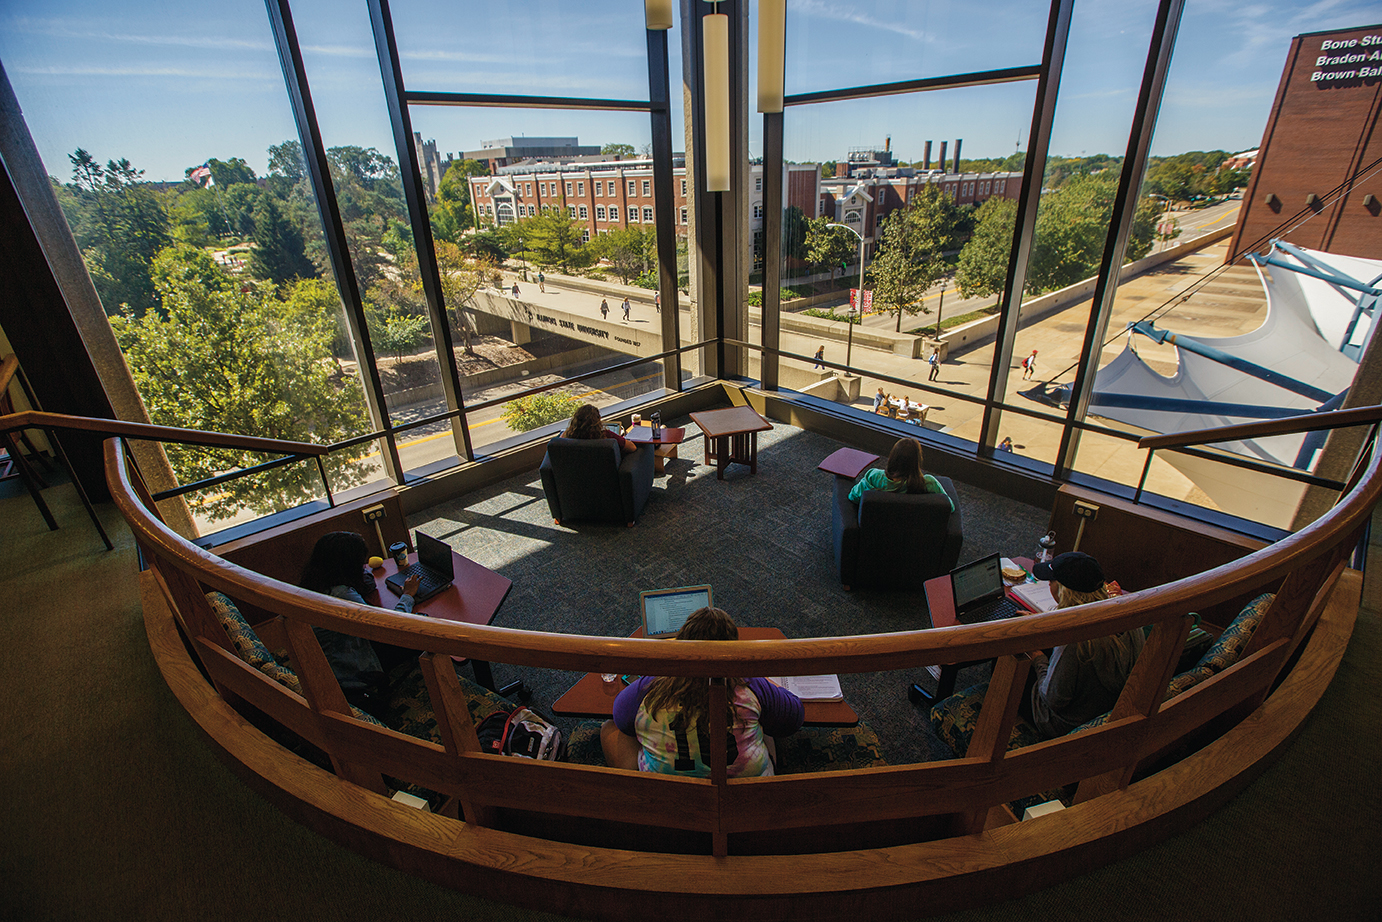 Looking out a corner window of Milner Library onto the Quad. Students seated in chairs working.